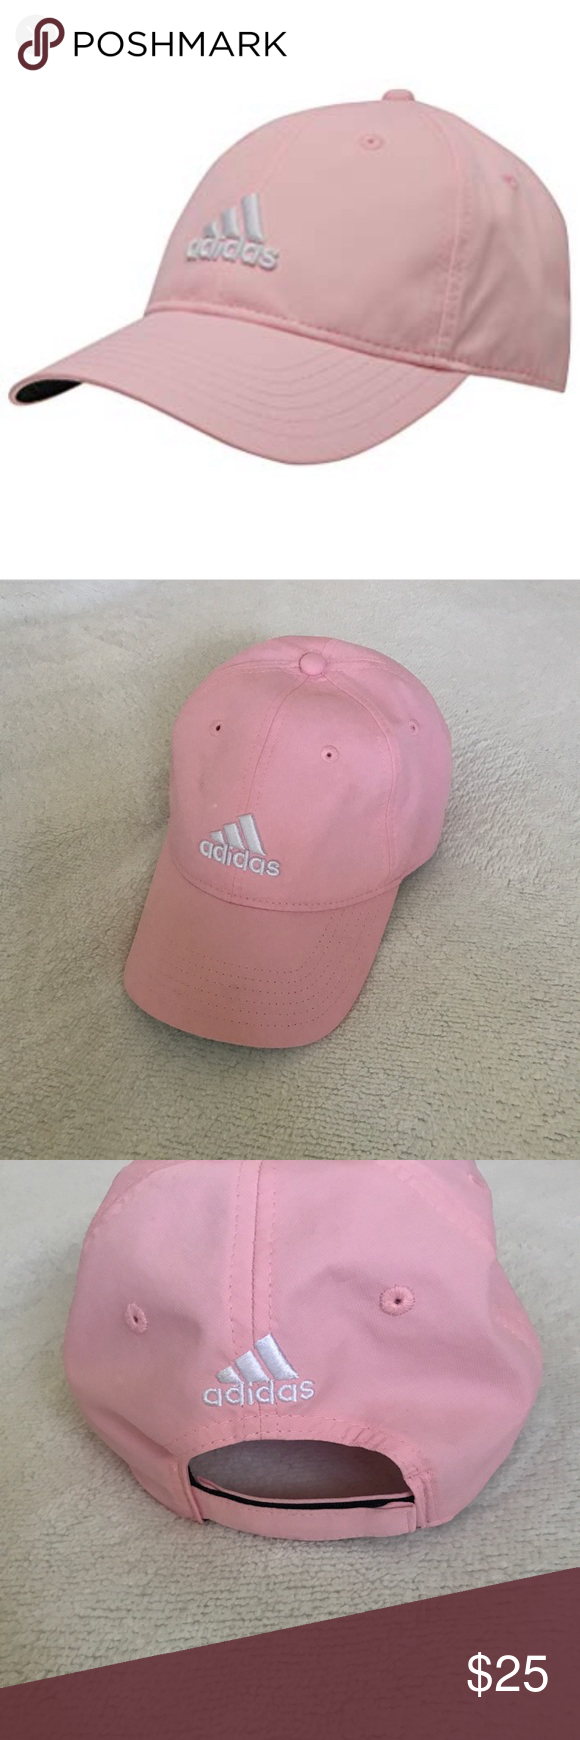 0b176a0669307 NWOT Pink Adidas Hat New without original tags pink hat by Adidas. Style is dad  hat   baseball cap. Velcro back. Same or next day shipping! adidas ...